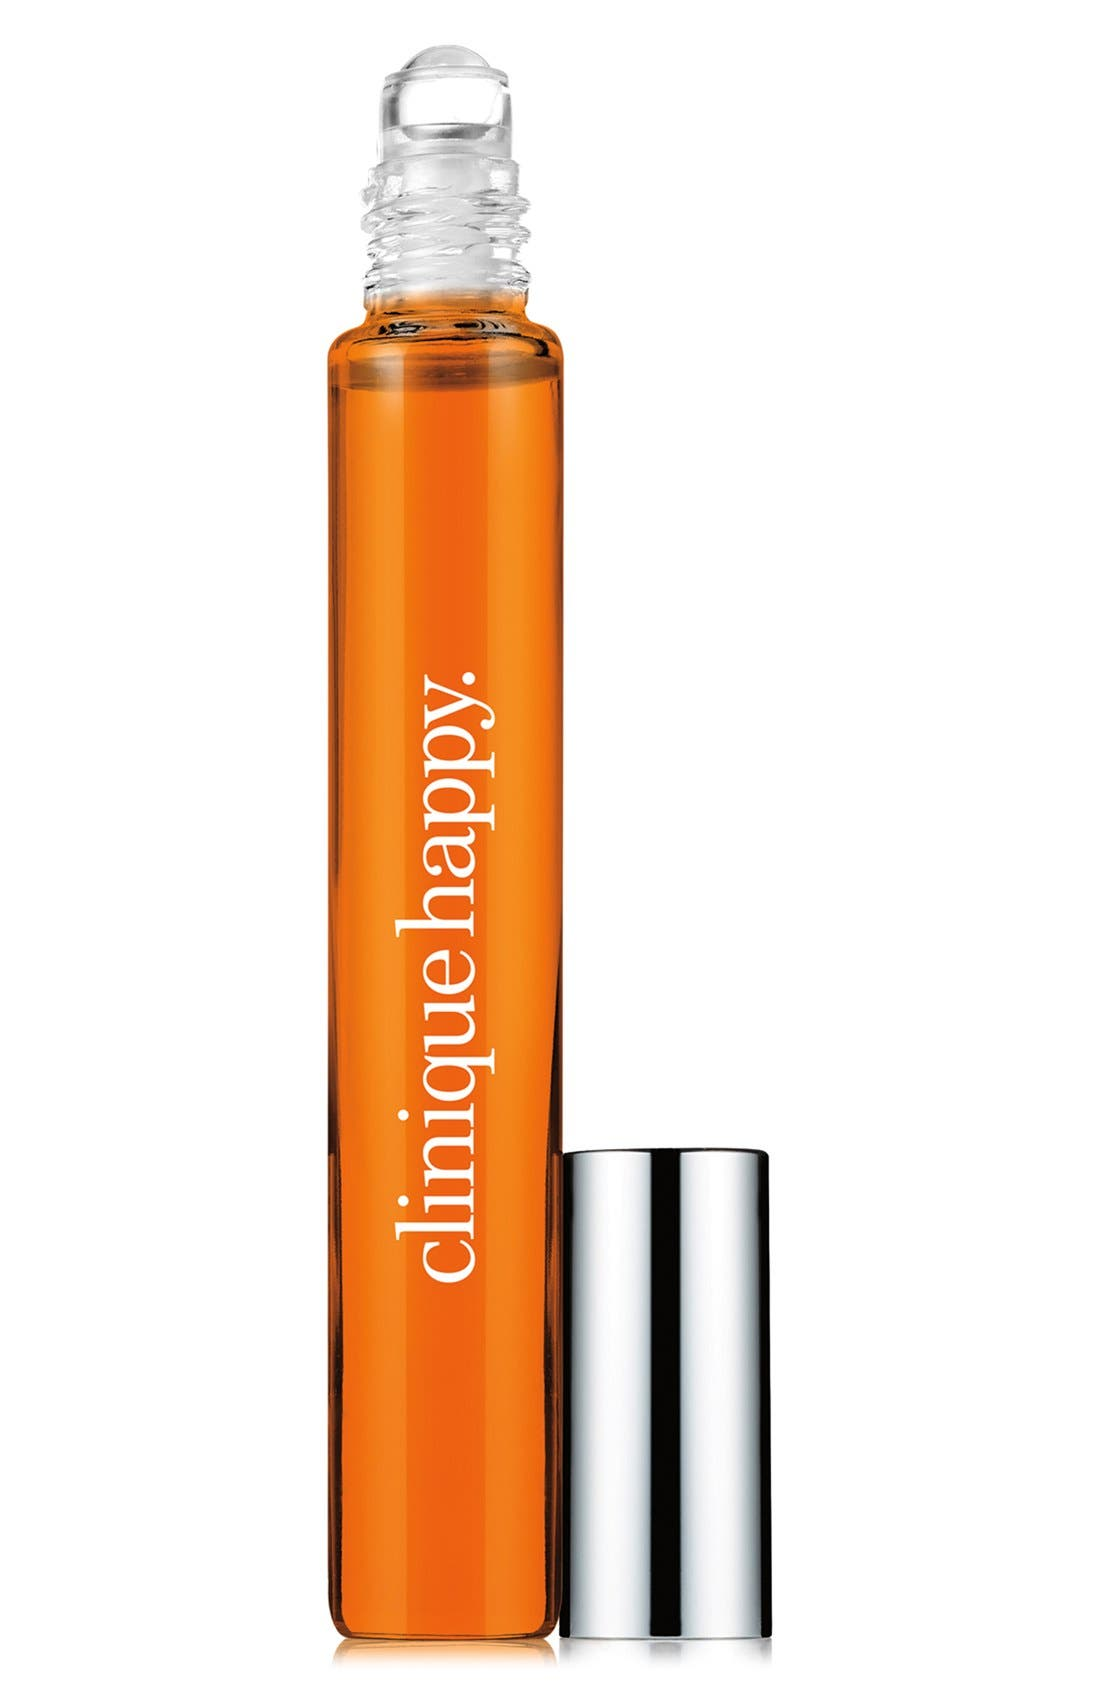 Clinique 'Happy' Fragrance Rollerball